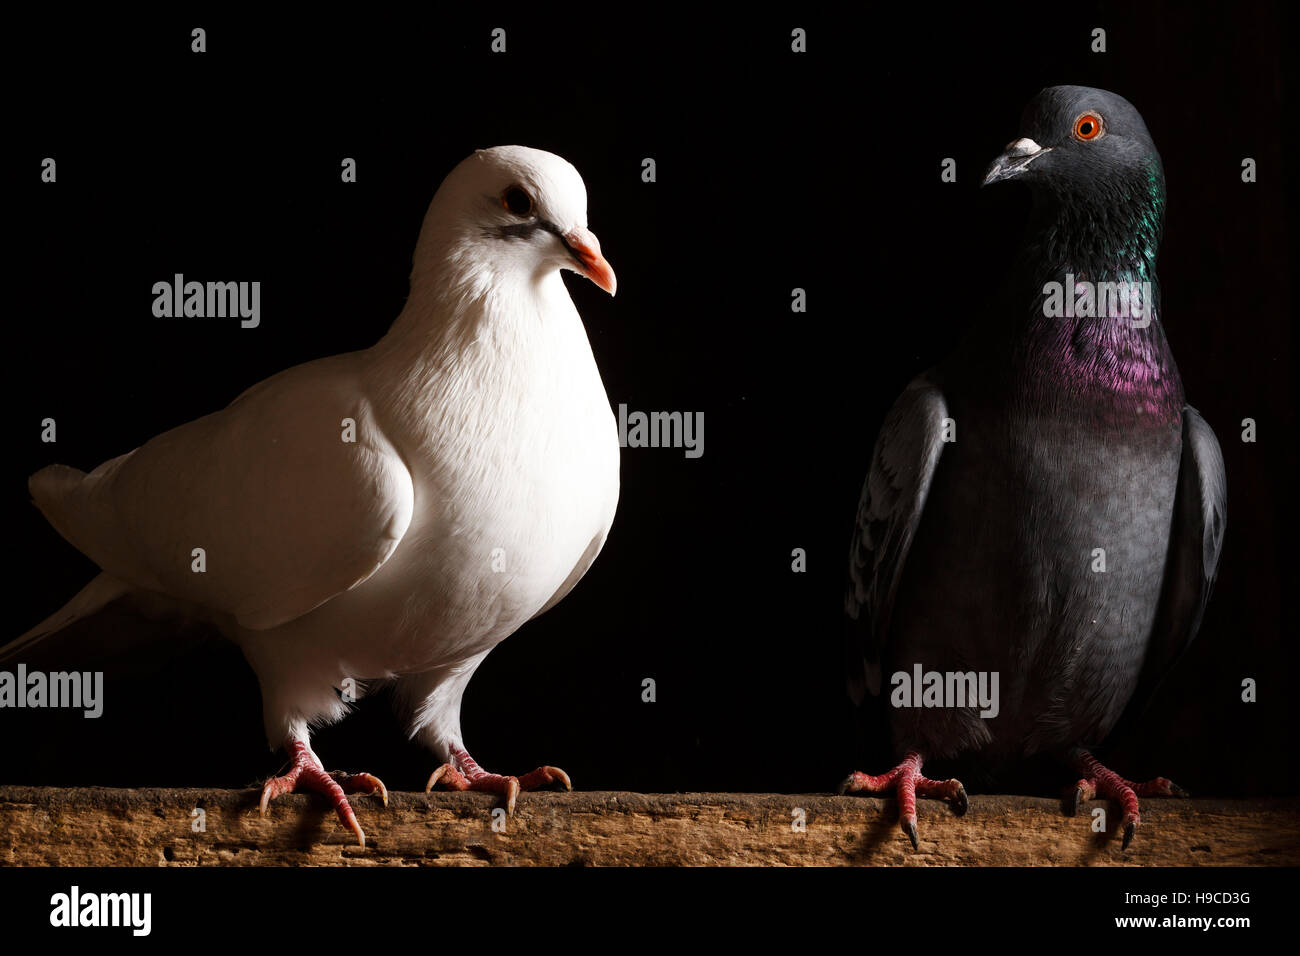 Black And White Dove On A Black Backgroundpostal Dove Symbol Of